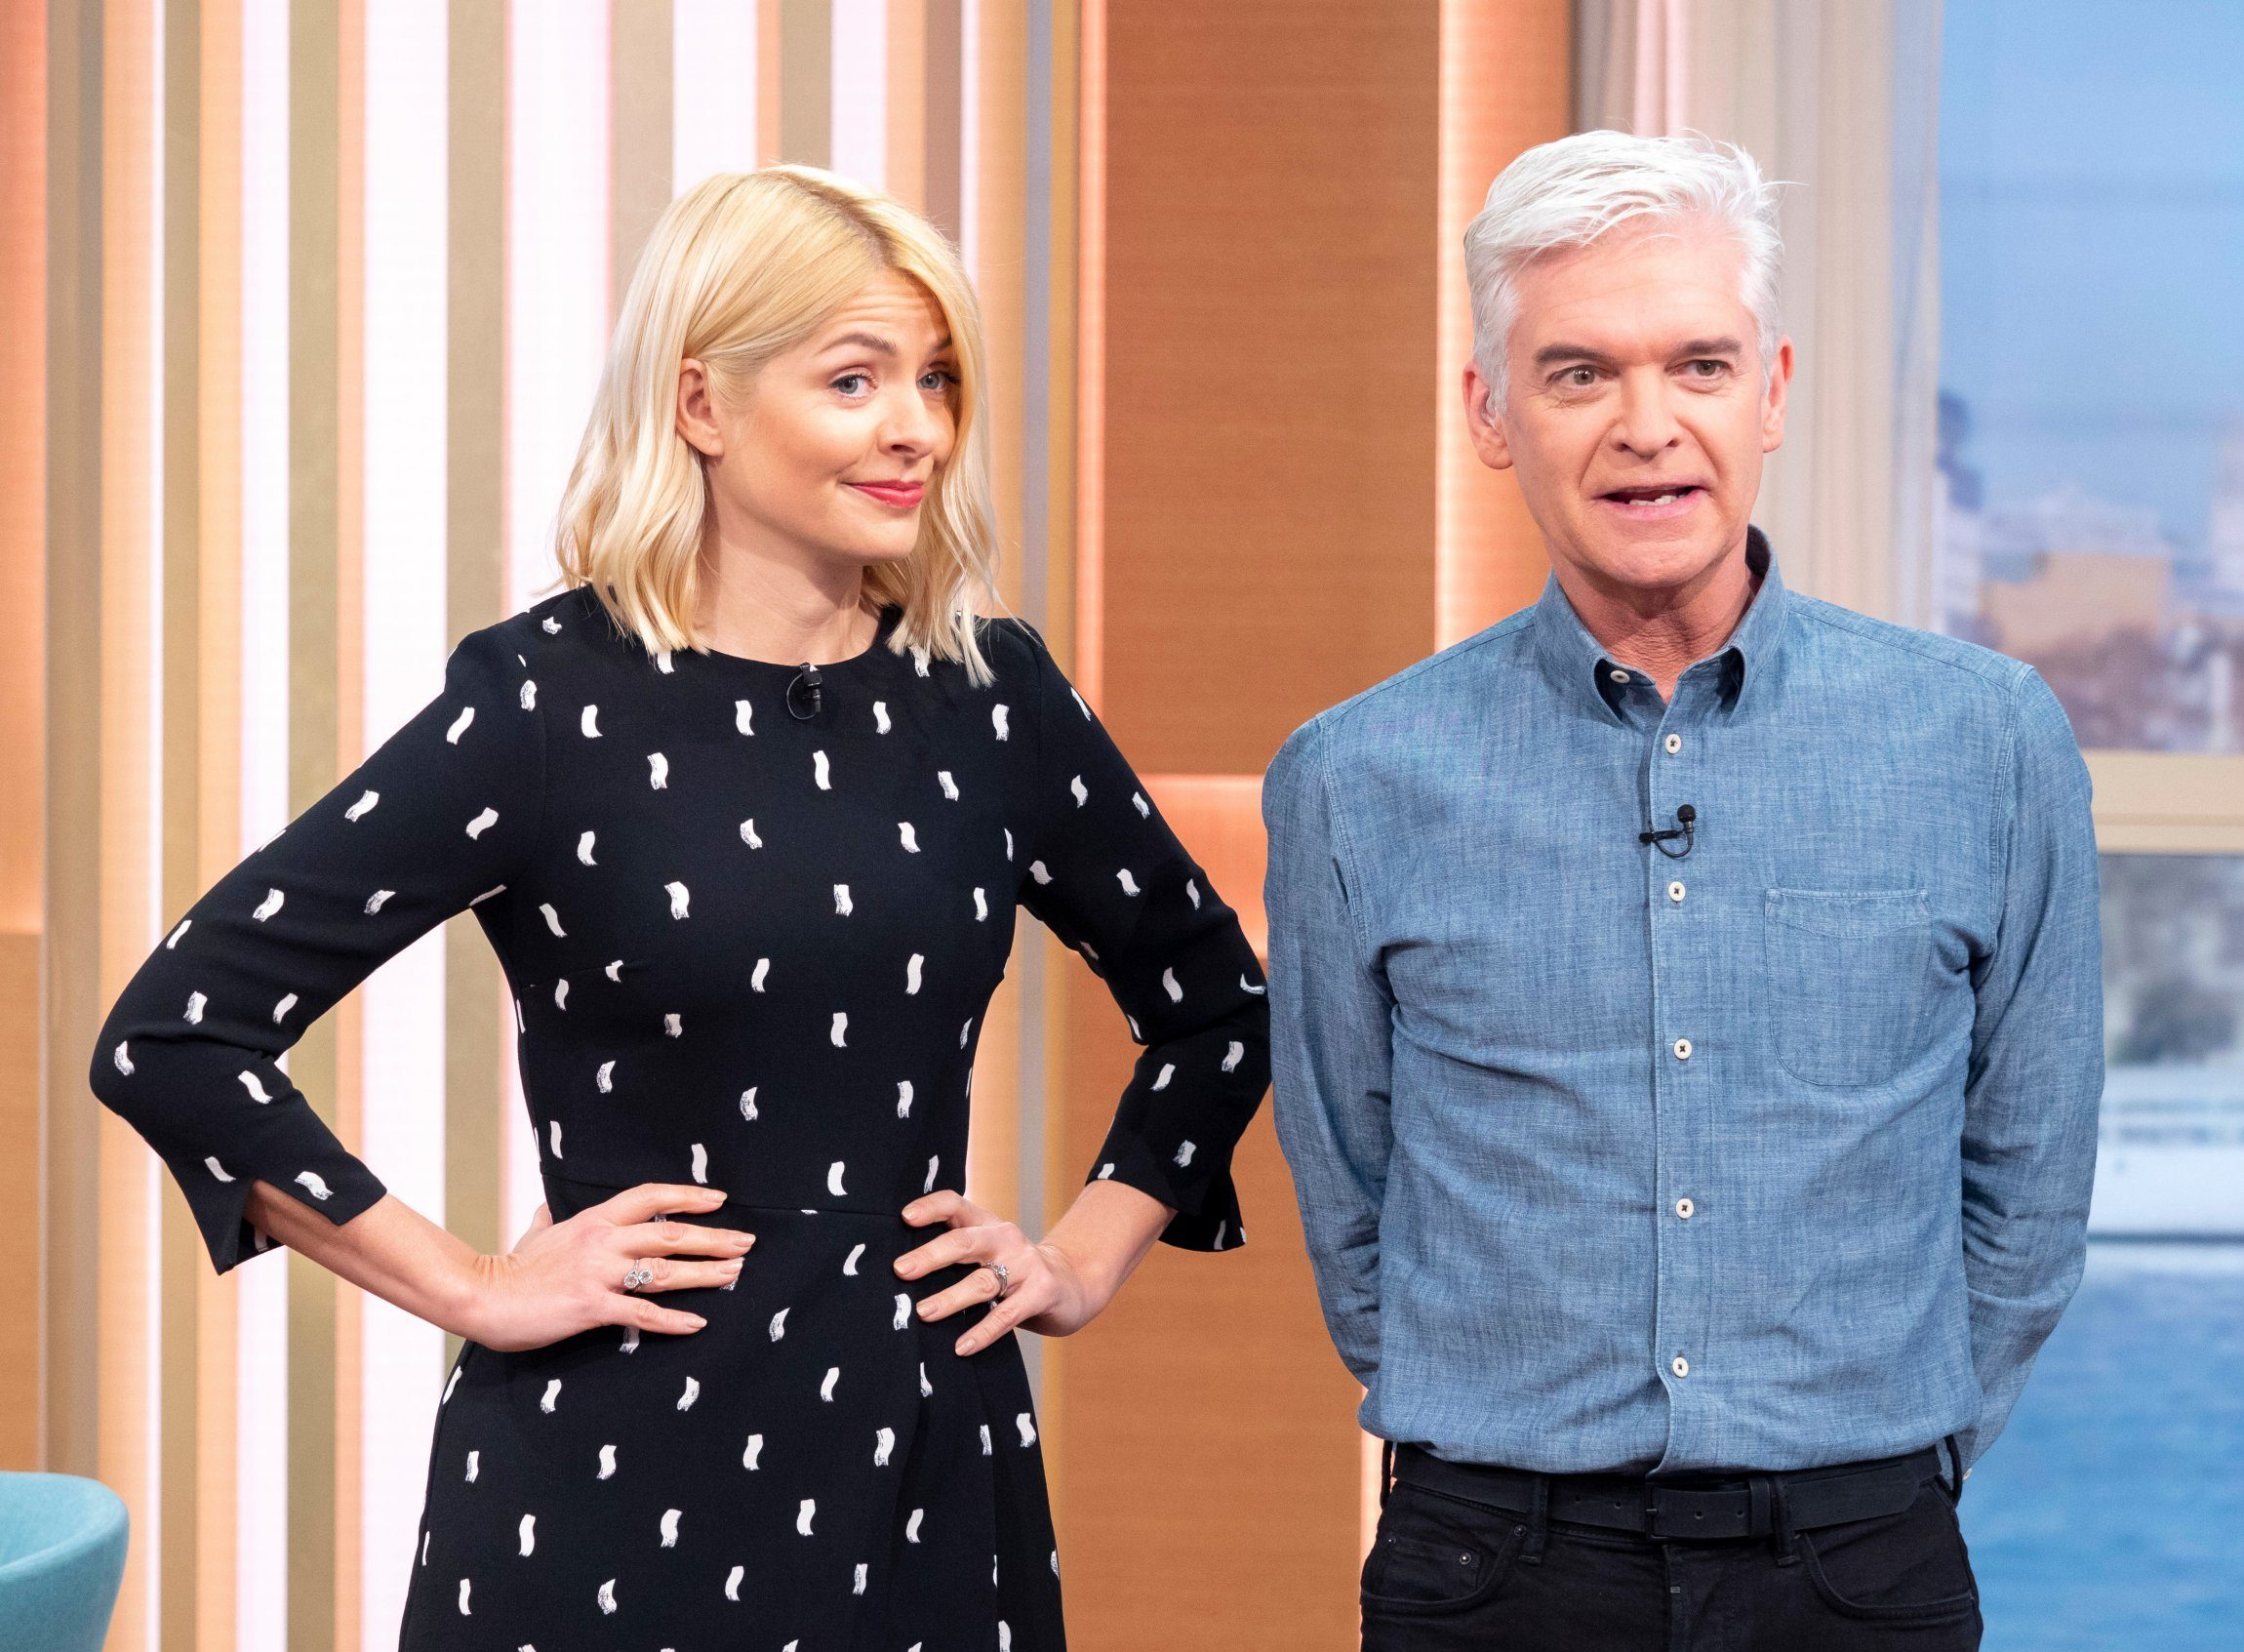 Editorial use only Mandatory Credit: Photo by Ken McKay/ITV/REX (10153007by) Holly Willoughby and Phillip Schofield 'This Morning' TV show, London, UK - 13 Mar 2019